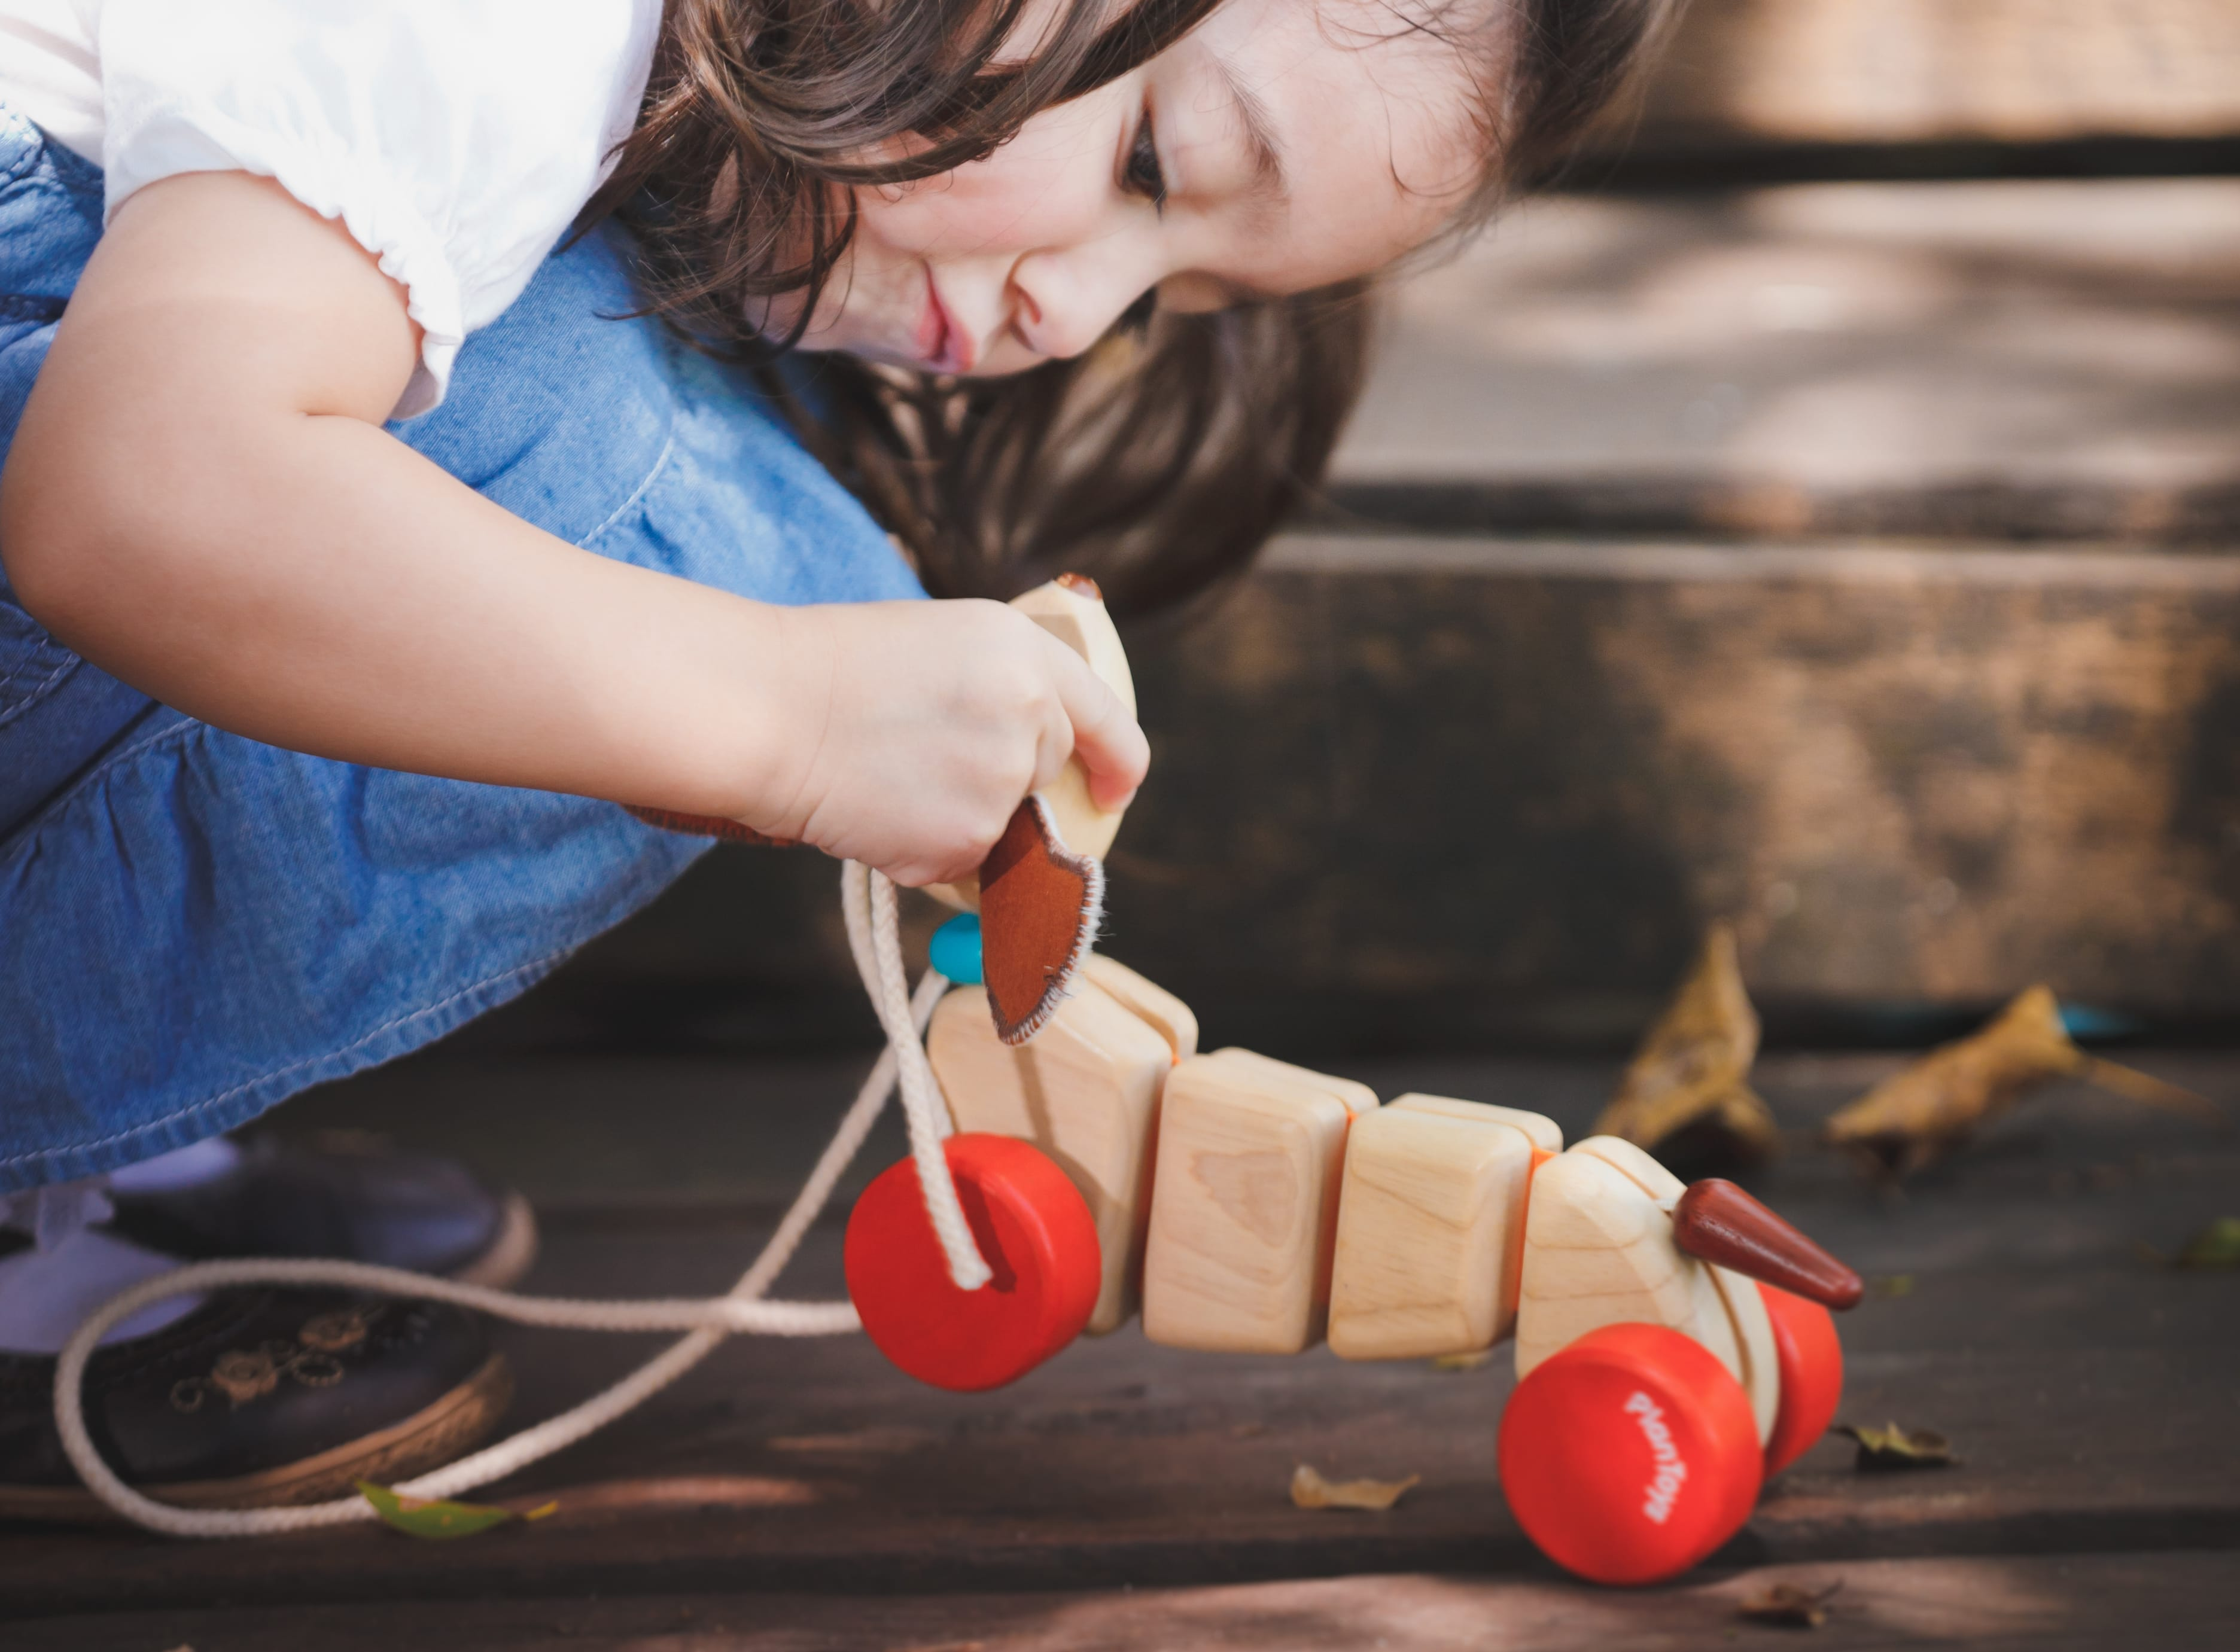 5101_PlanToys_HAPPY_PUPPY_Push_and_Pull_Gross_Motor_Coordination_Imagination_12m_Wooden_toys_Education_toys_Safety_Toys_Non-toxic_1.jpg